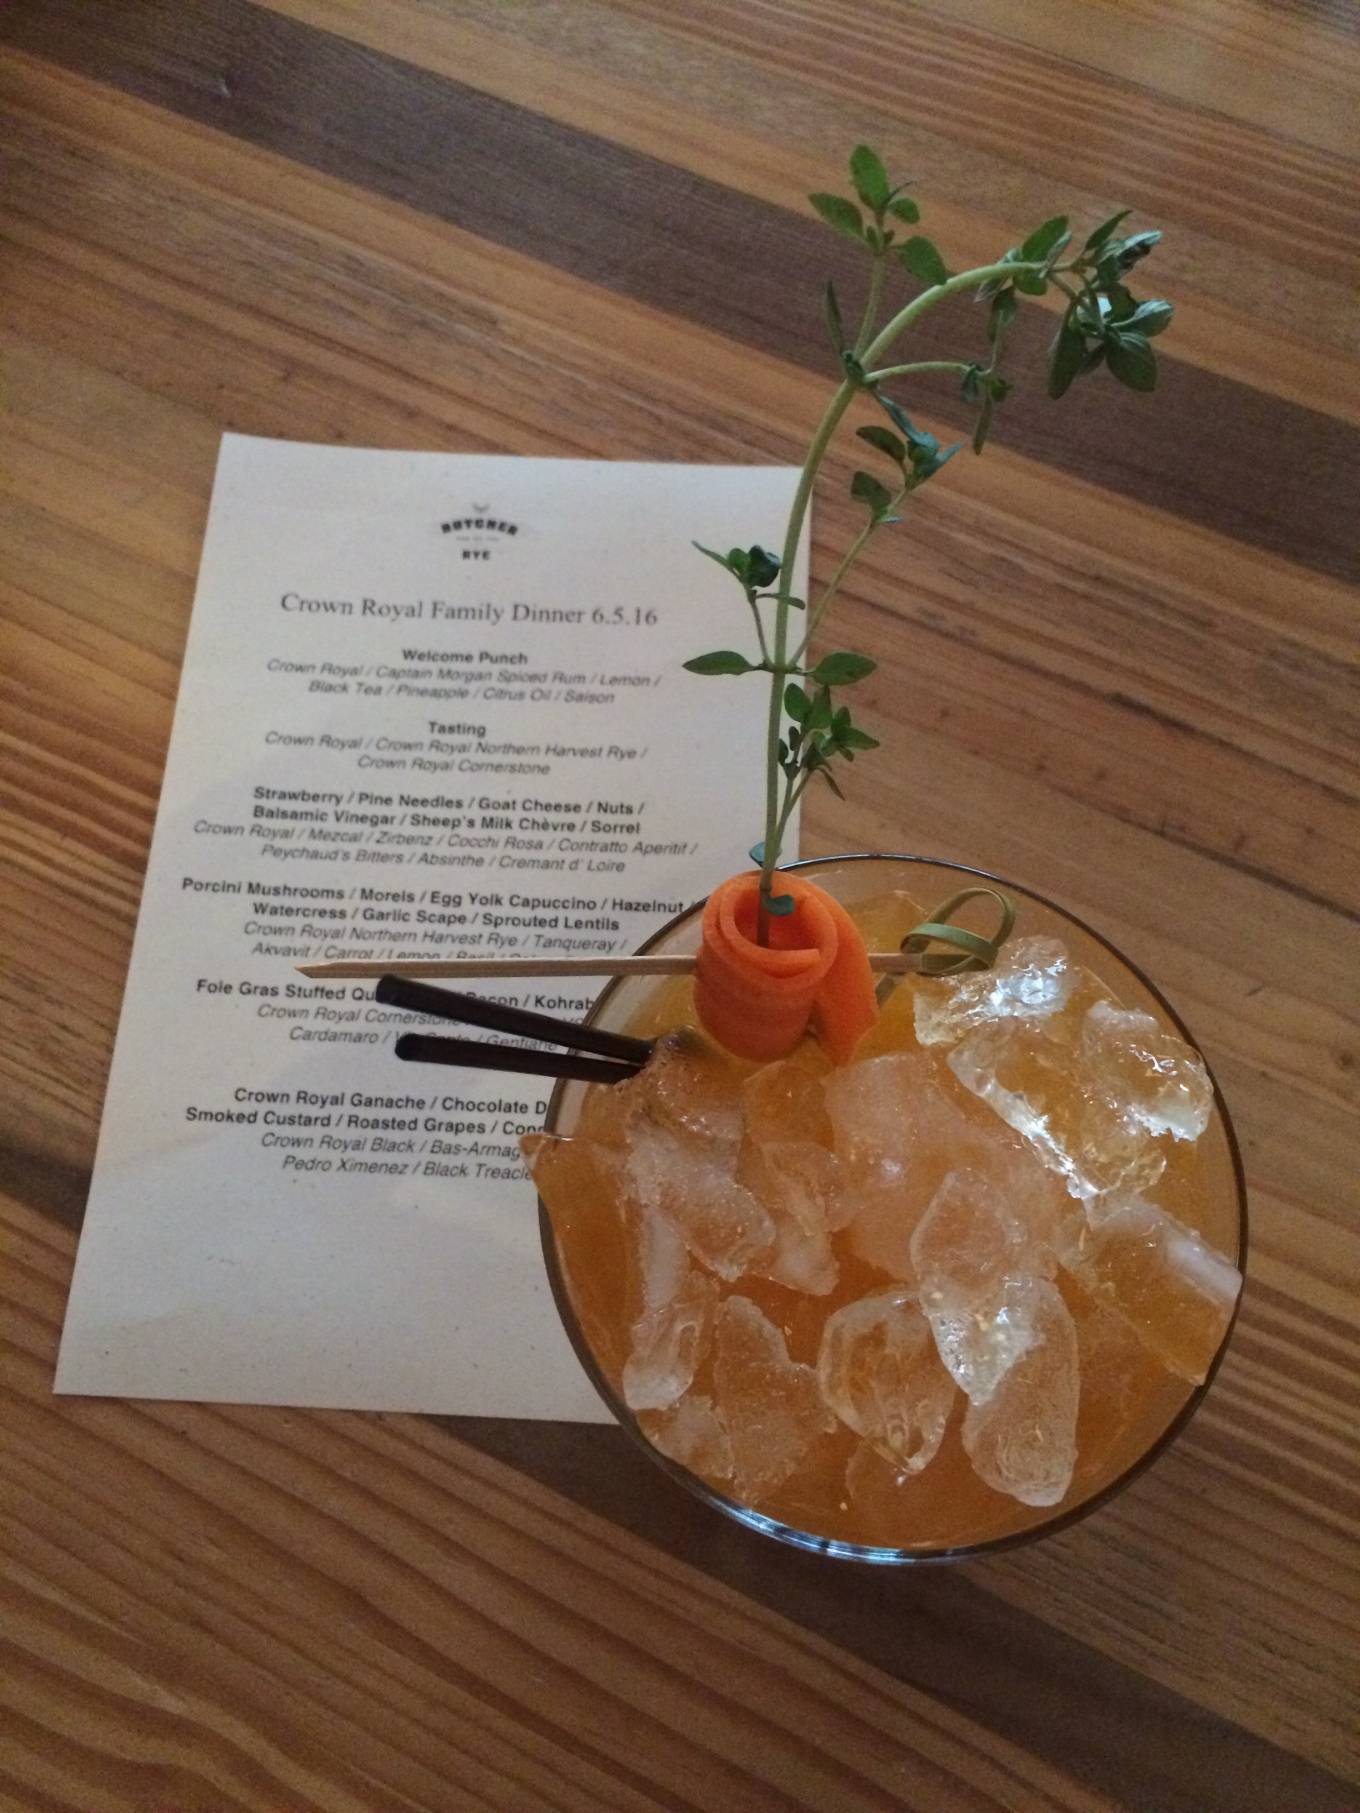 A cocktail and tasting menu